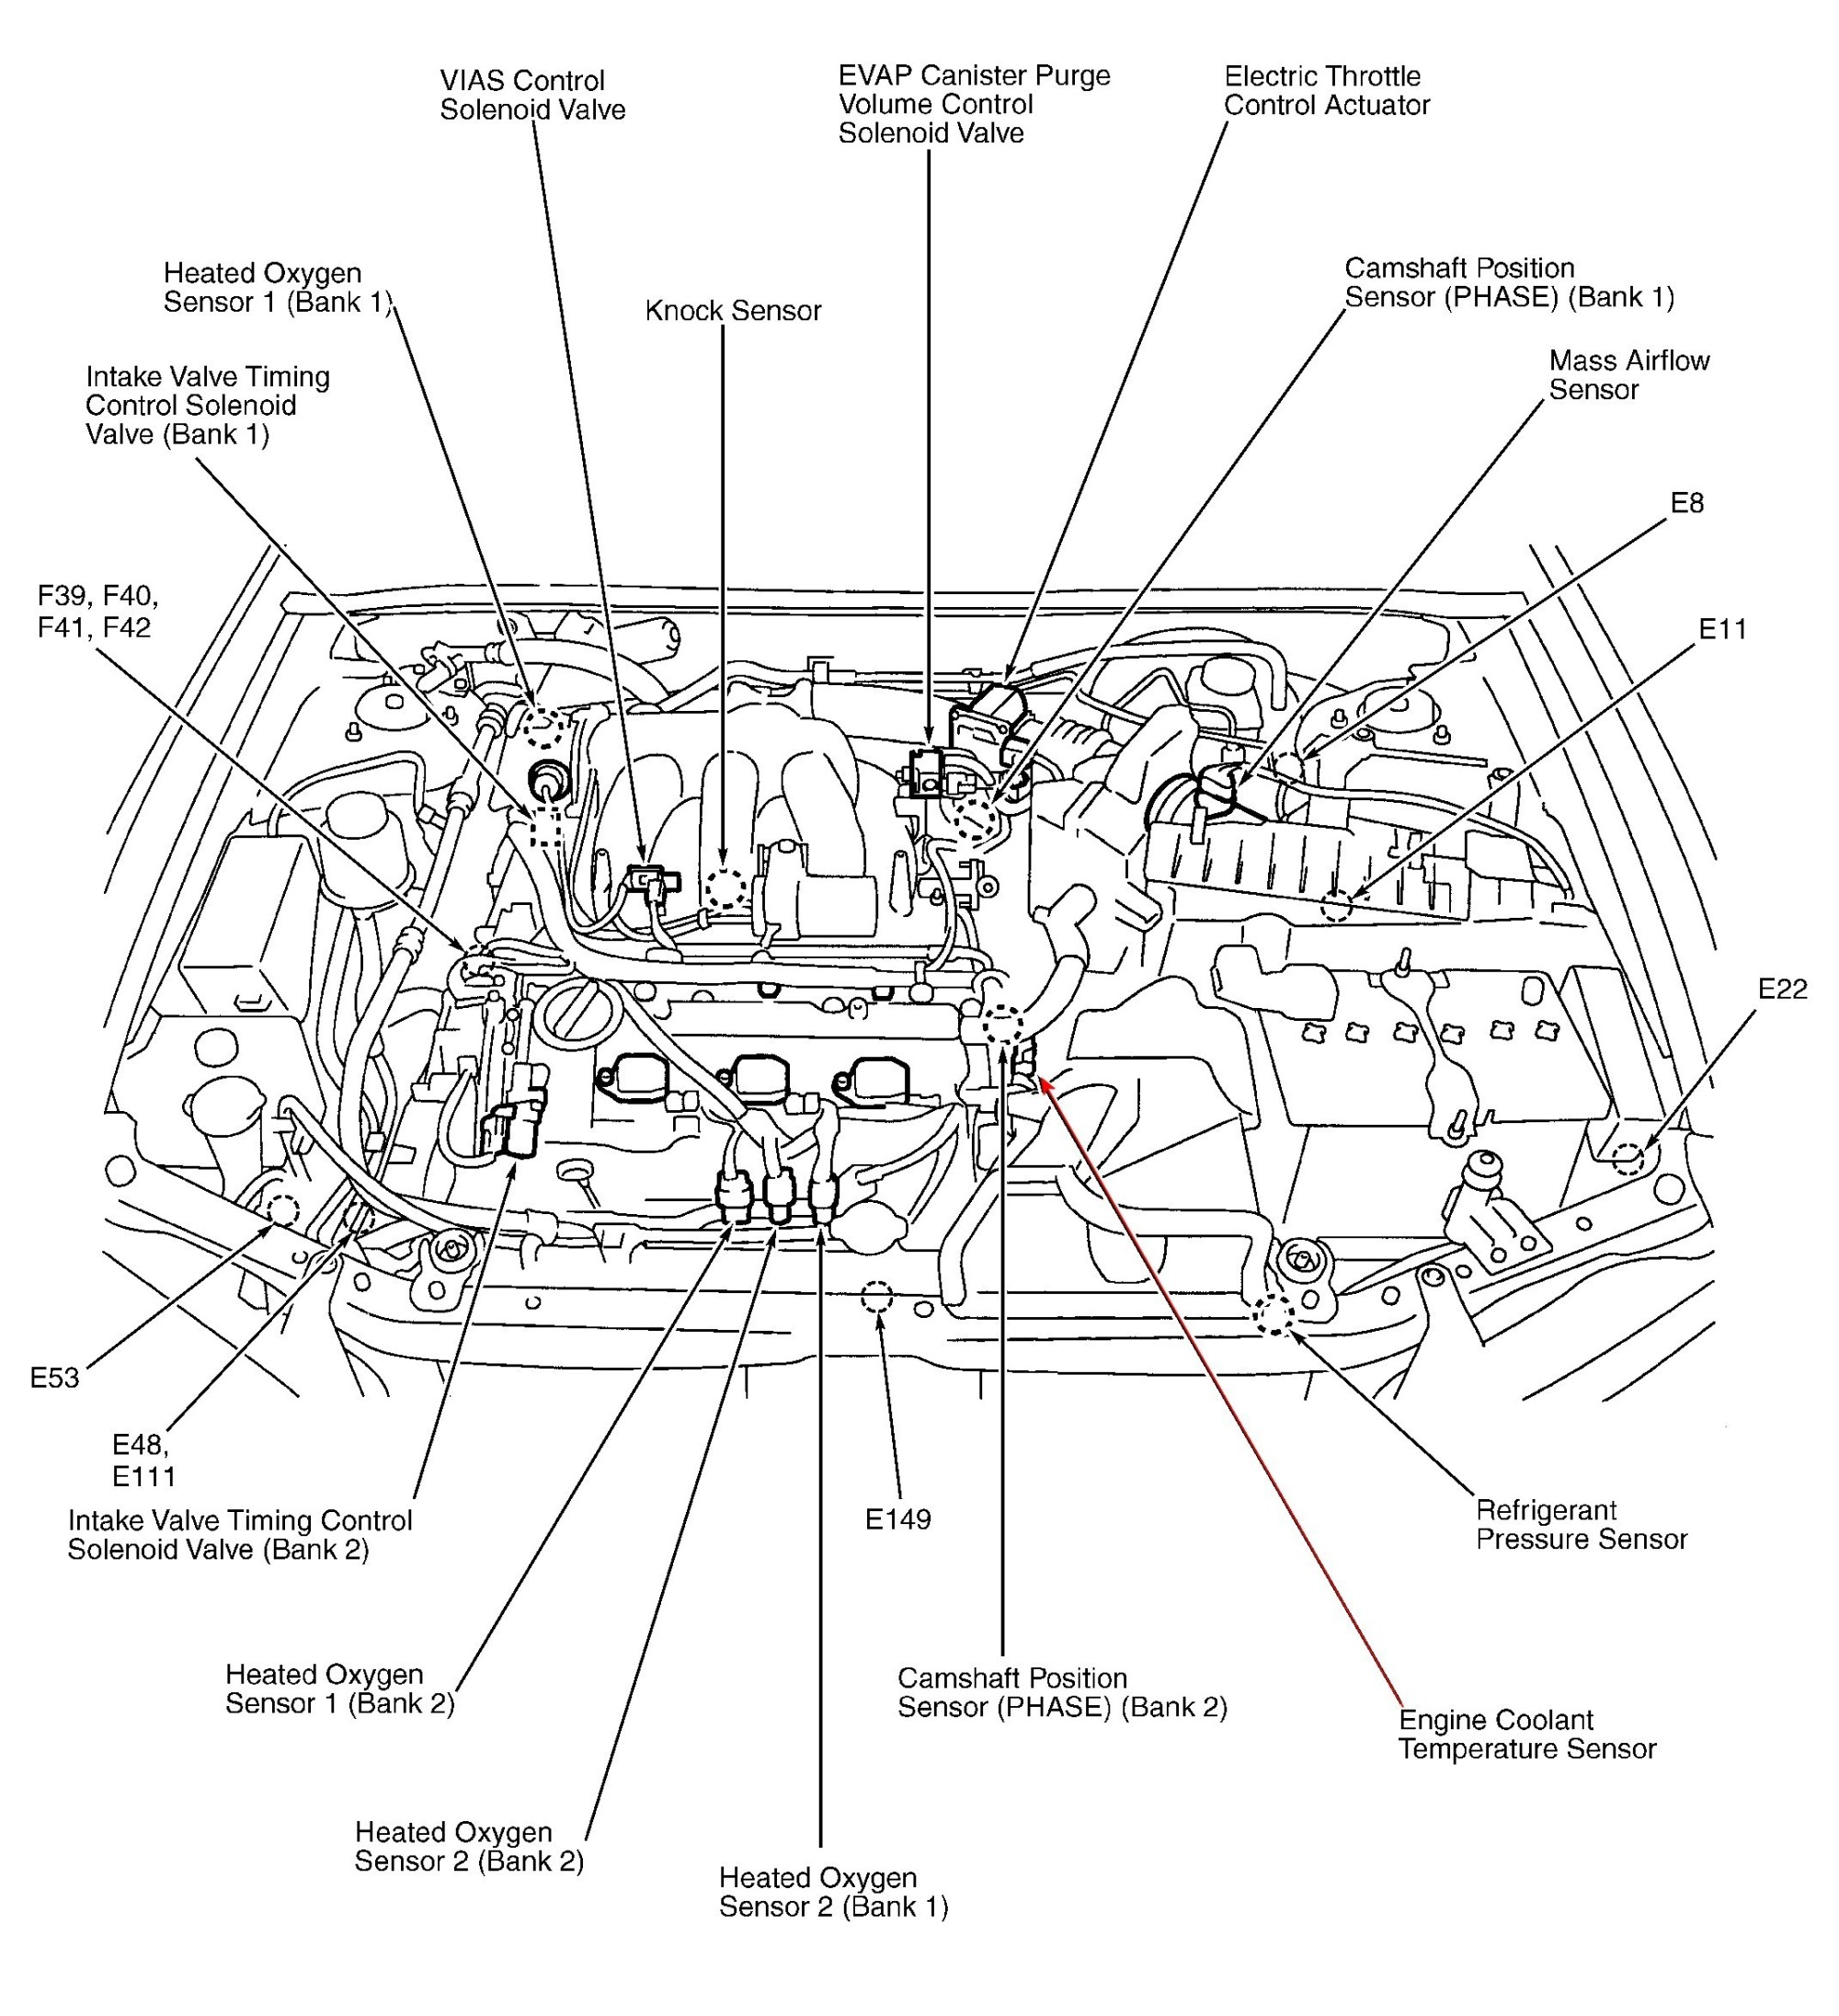 hight resolution of 1996 dodge caravan engine diagram wiring diagram fascinating 97 dodge grand caravan engine diagram 1997 dodge grand caravan engine diagram